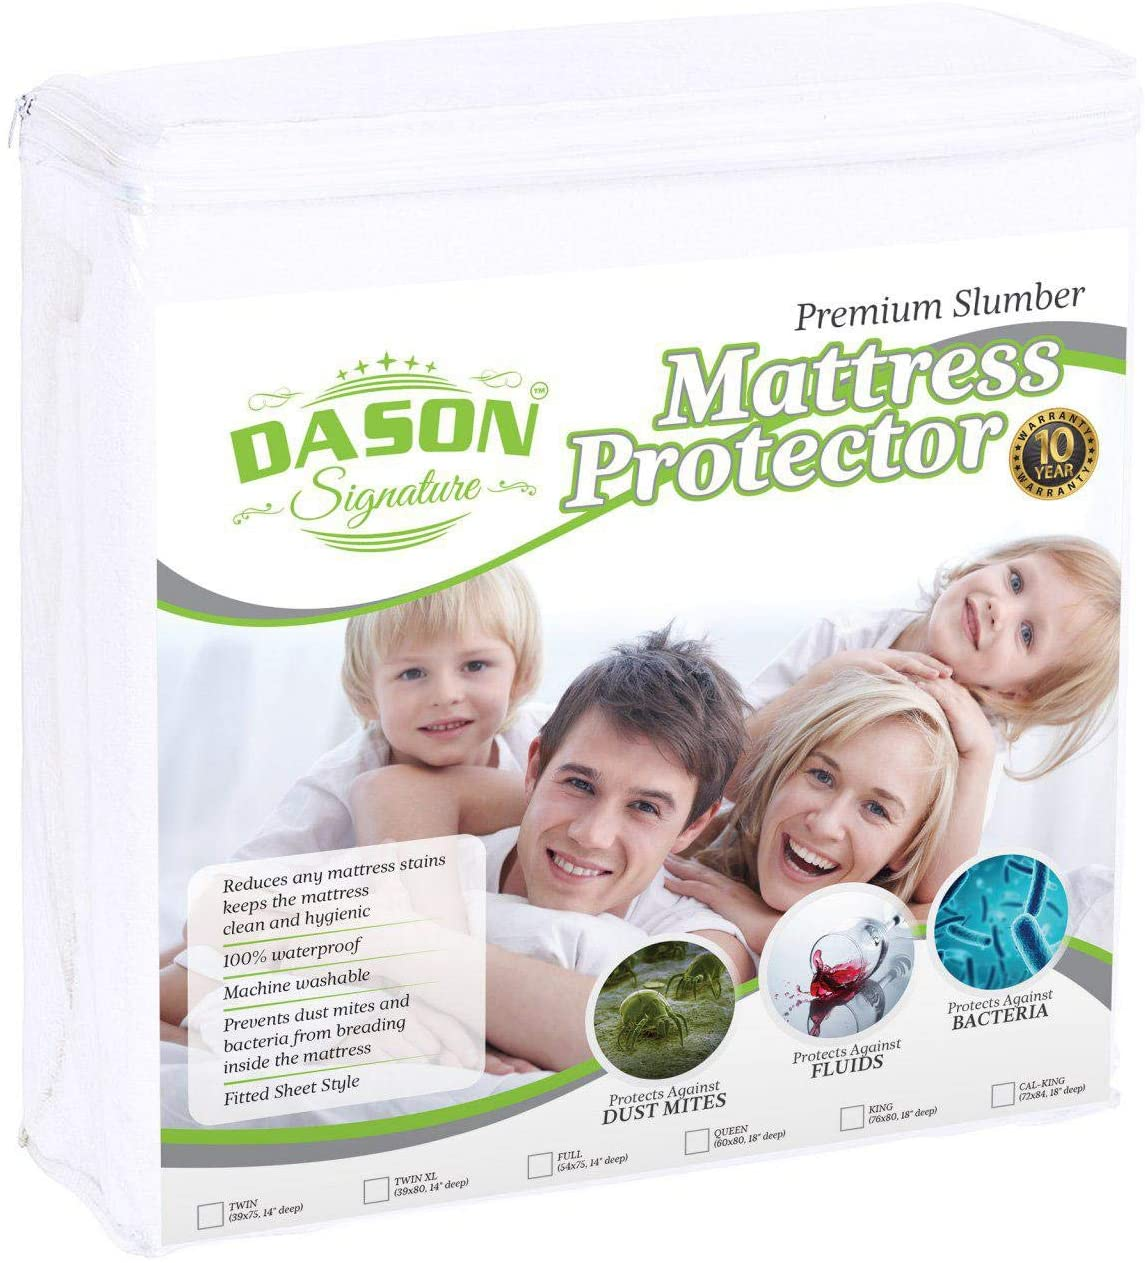 DASON Signature Premium Mattress Protector pad Cover Super Soft Cotton Sheet - Waterproof & Breathable Hypoallergenic Anti-Allergy and Comfortable - Twin Size